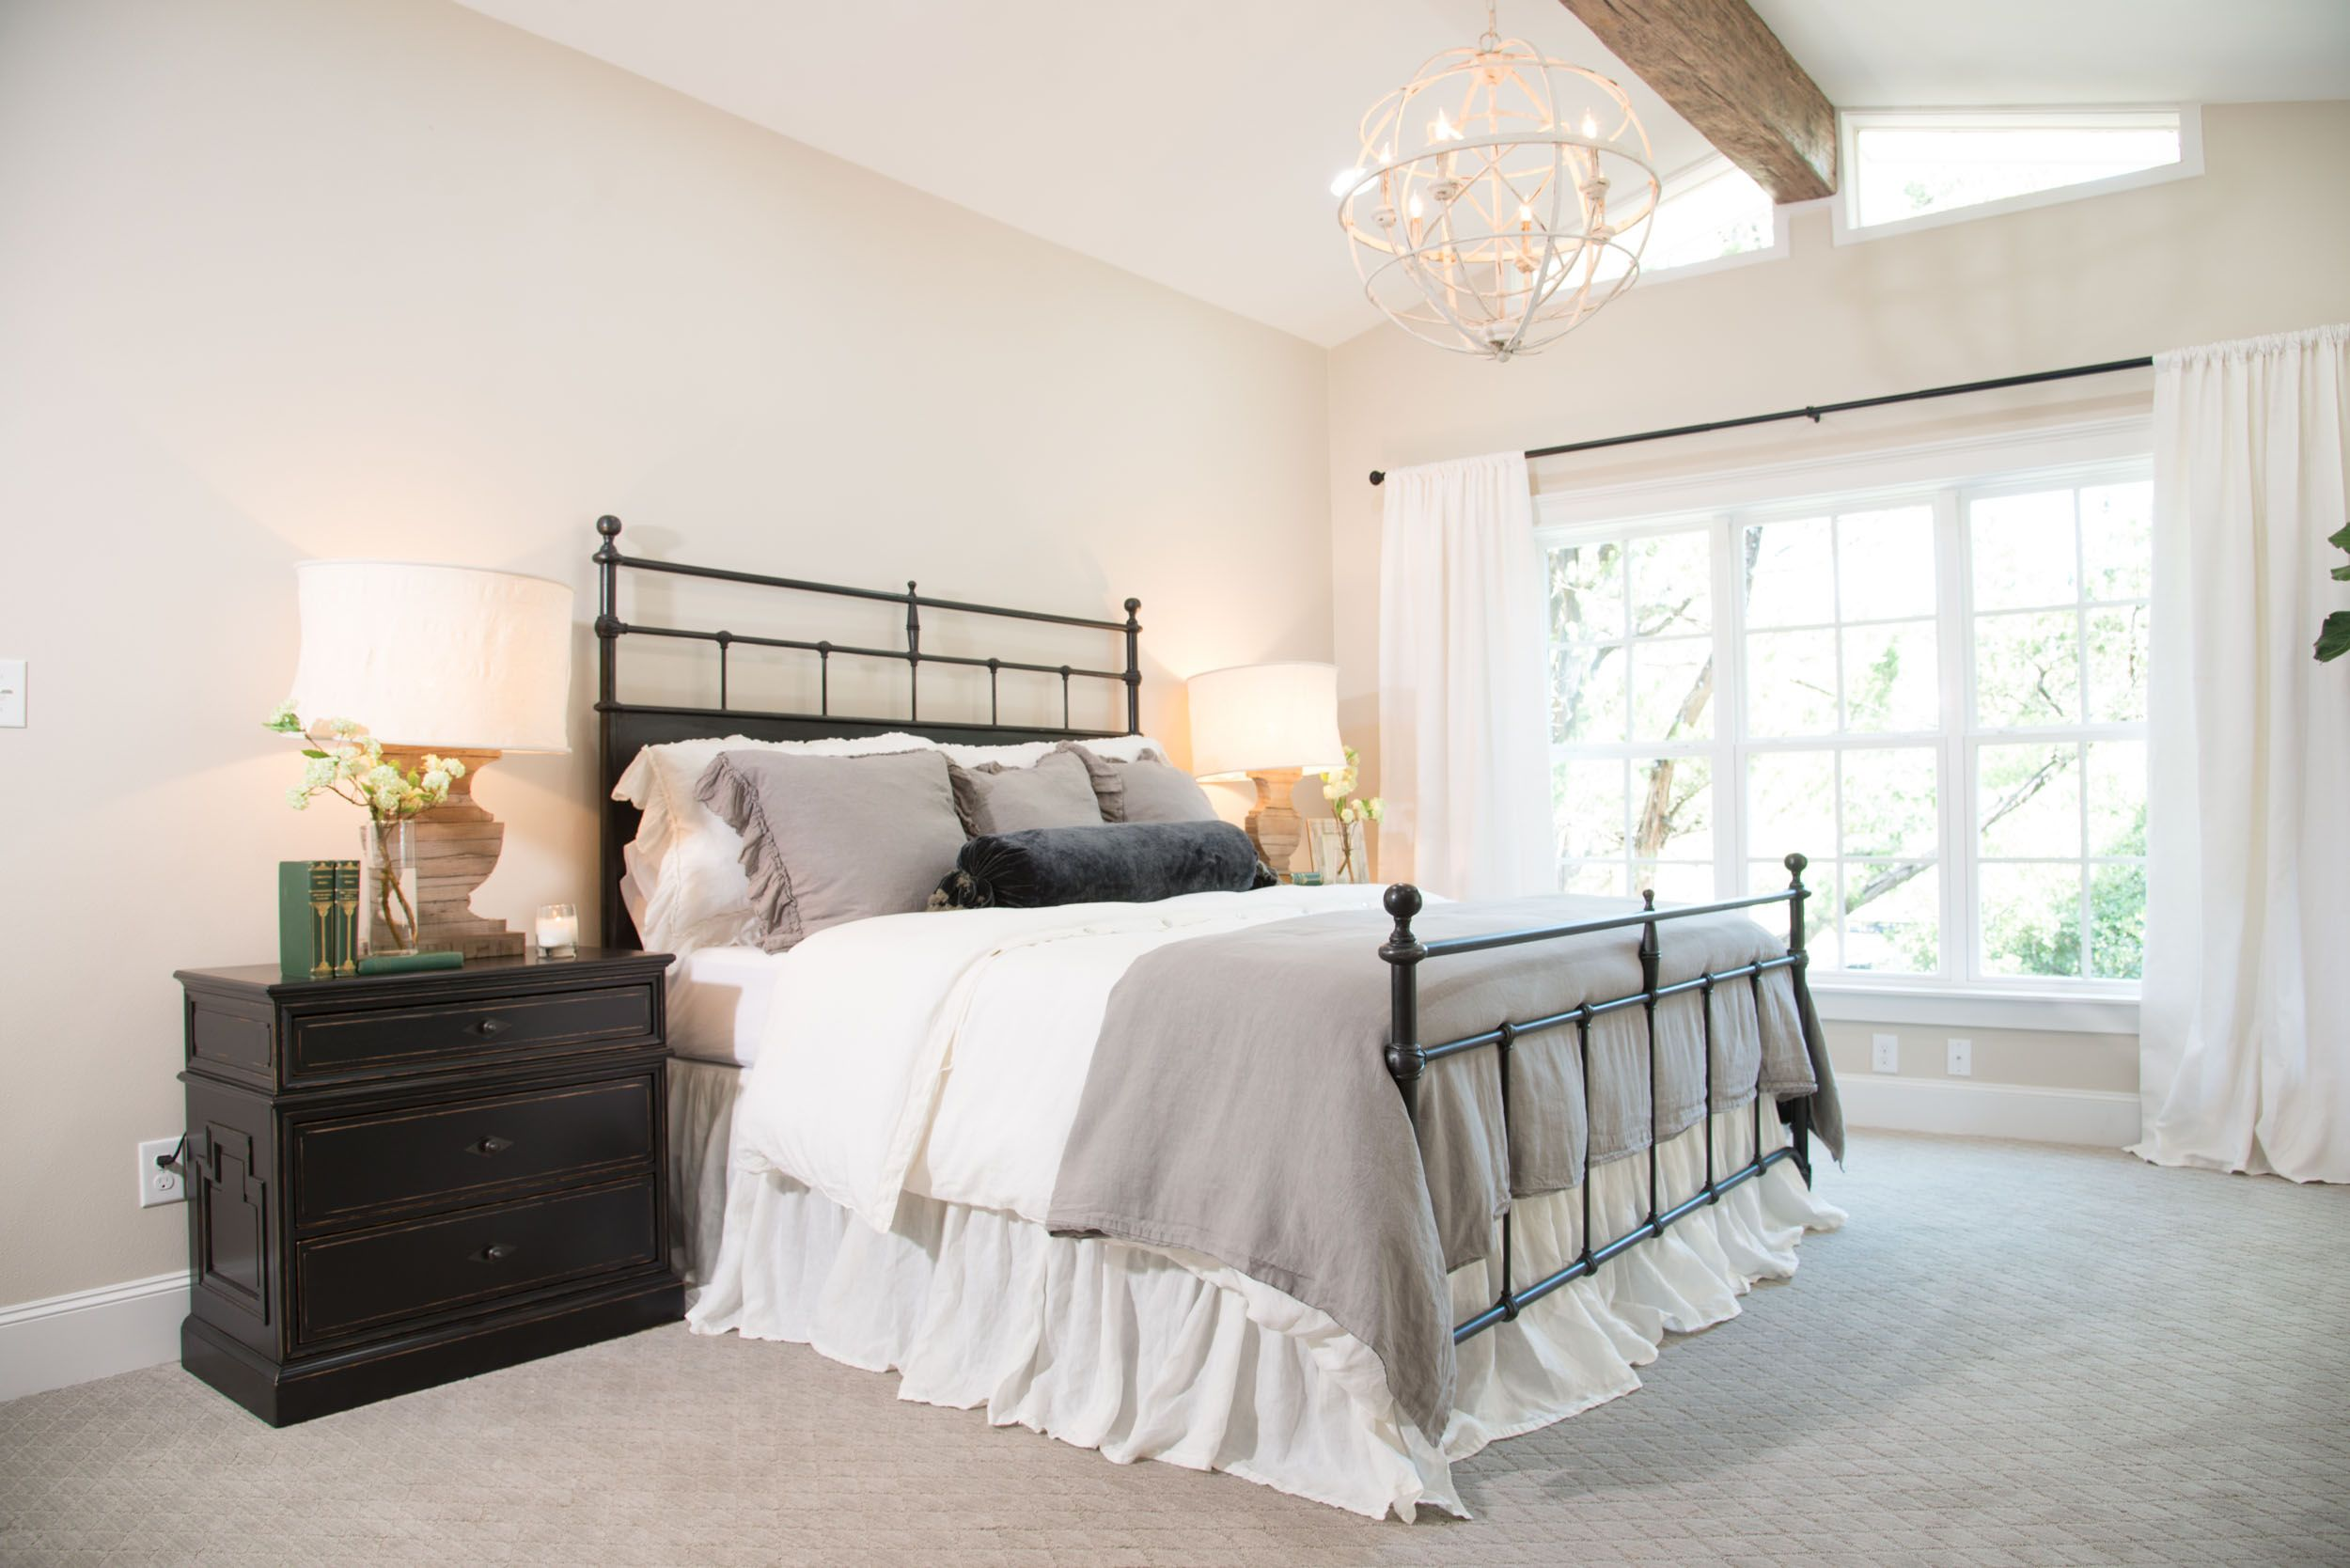 Season 4 episode 1 house seasons joanna gaines and master bedroom Fixer upper master bedroom pictures